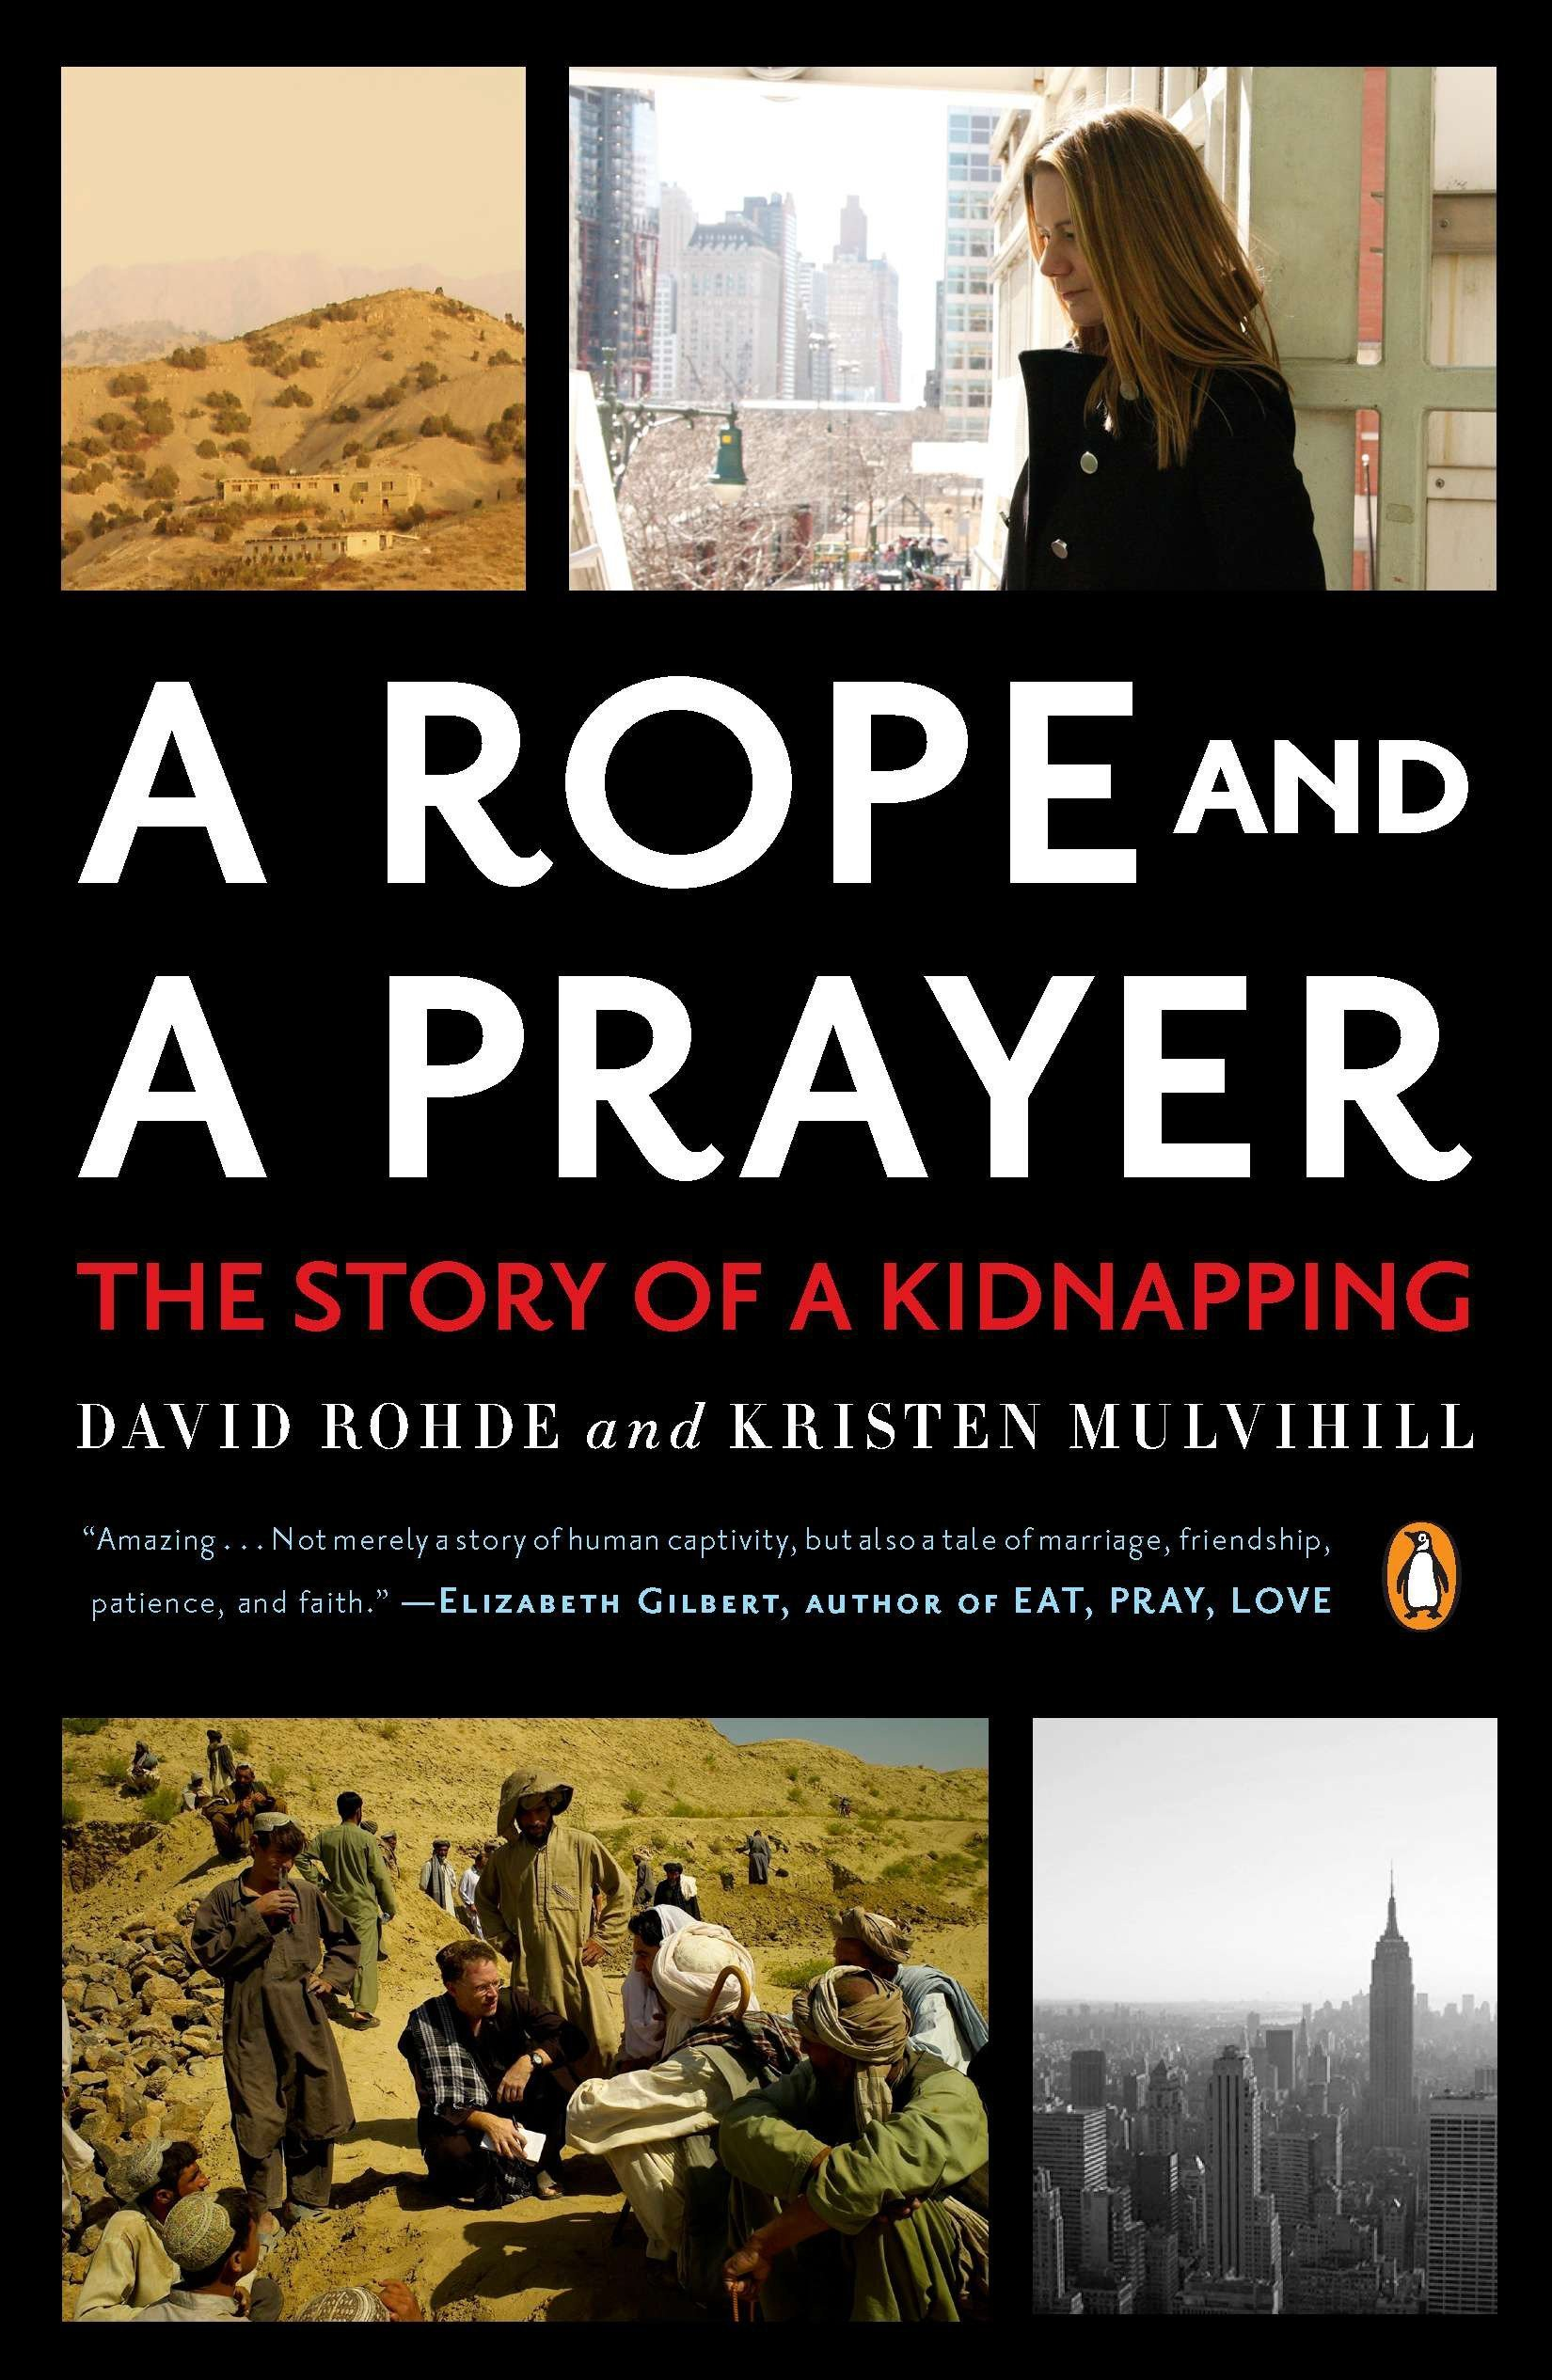 A Rope and a Prayer: The Story of a Kidnapping: David Rohde